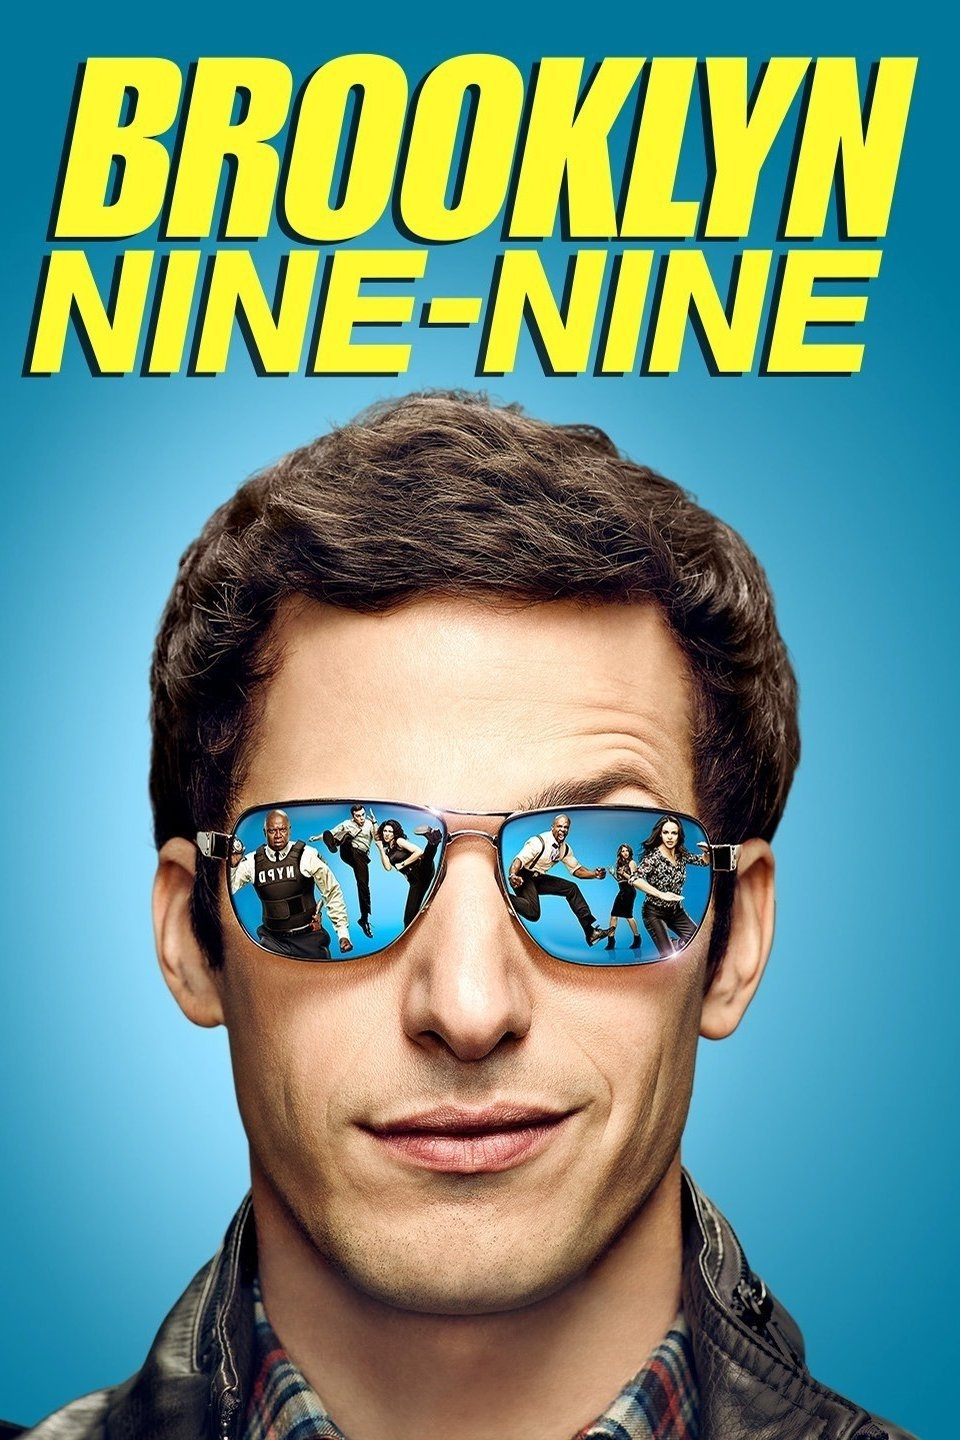 Brooklyn Nine-Nine show